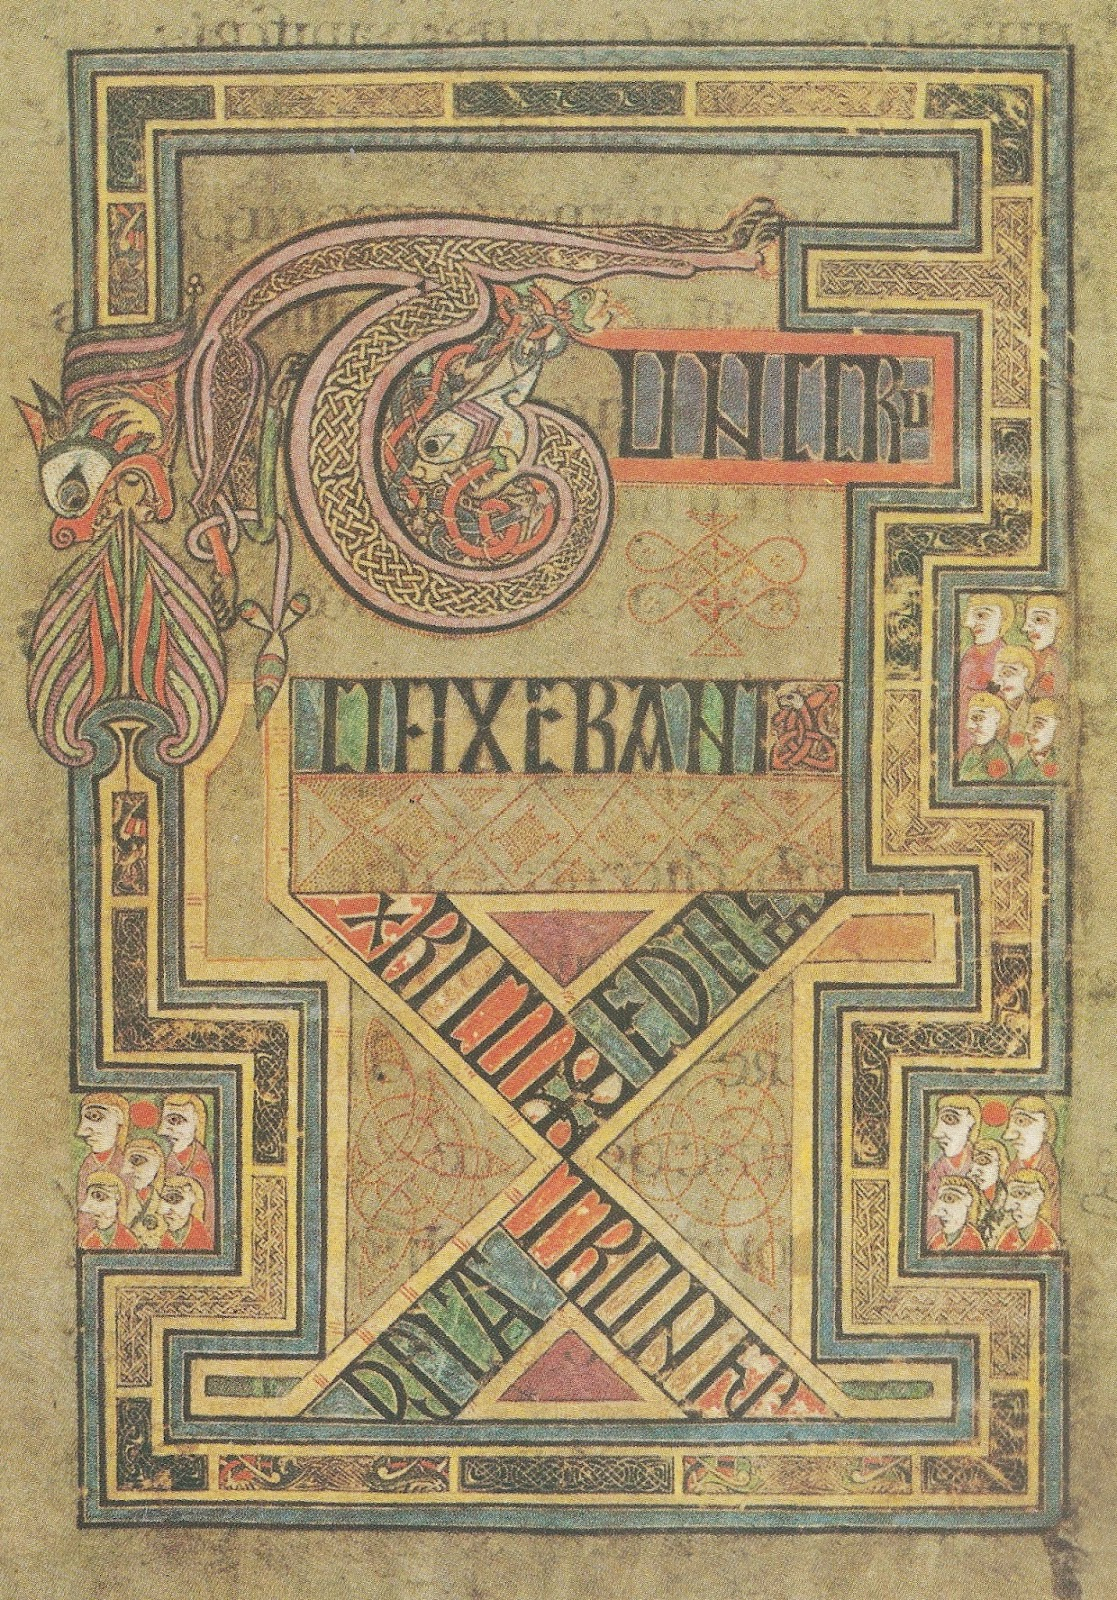 1000+ Images About Celtic Borders/Layouts On Pinterest tout Script In The Book Of Kells